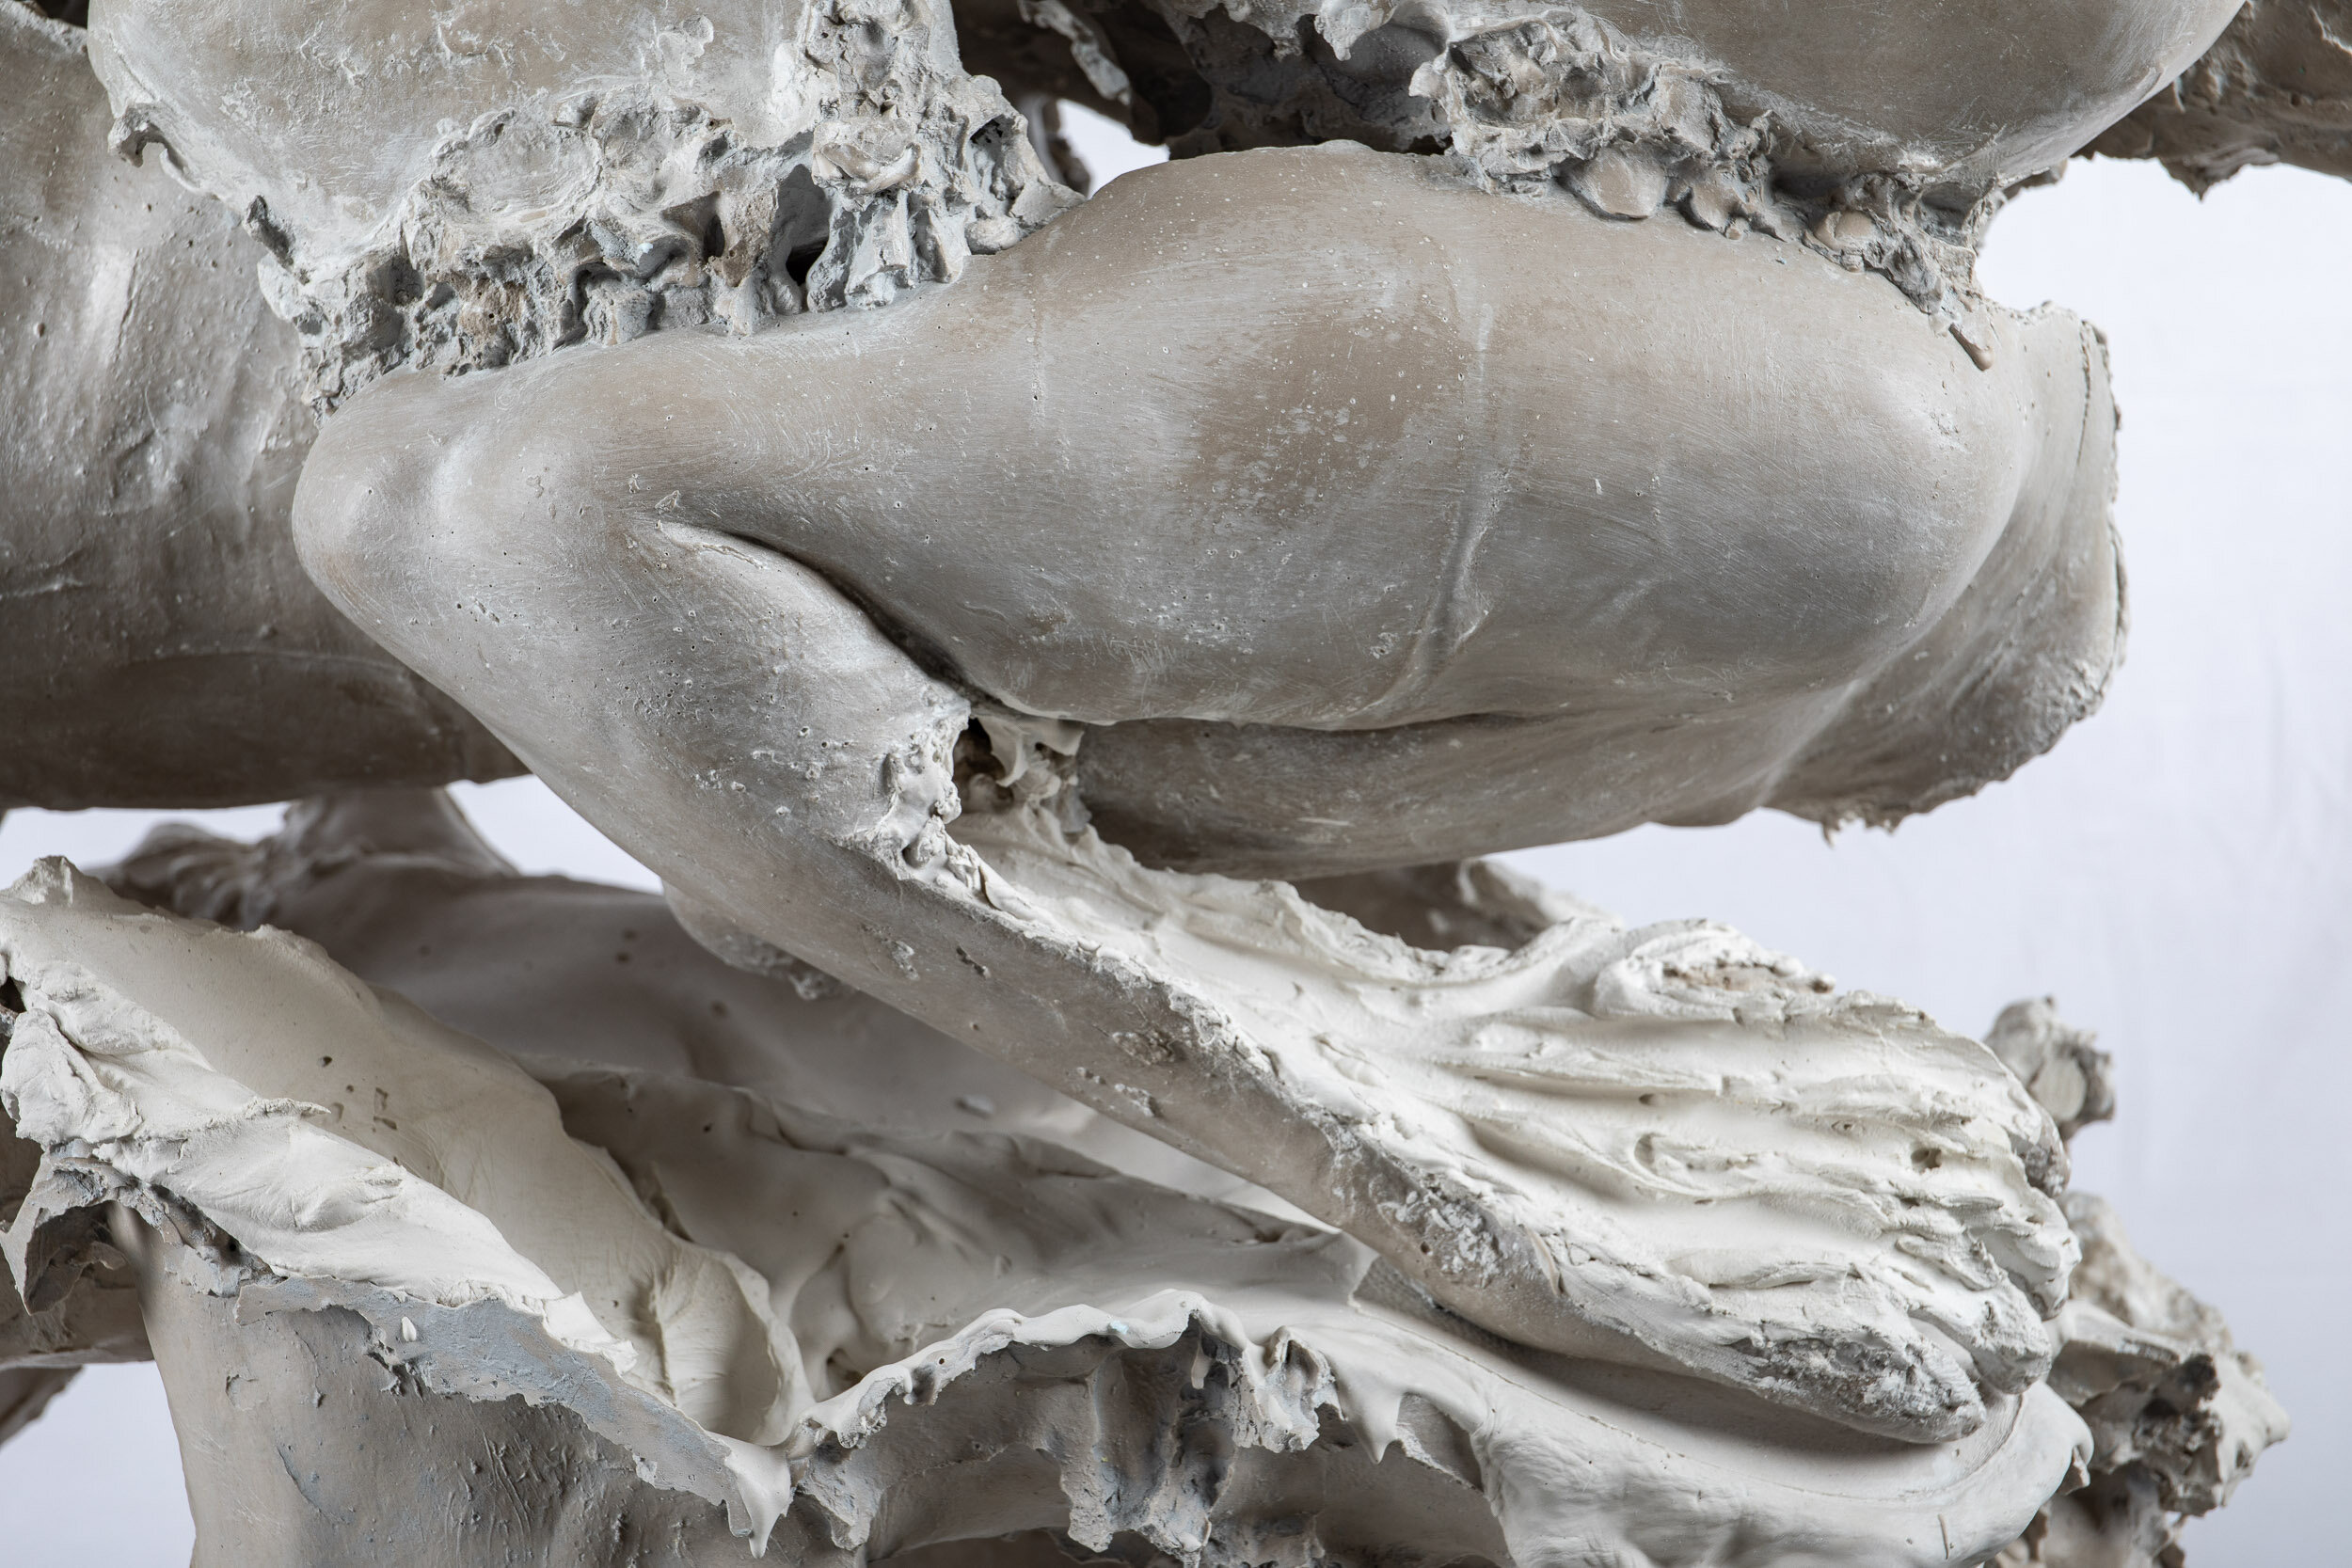 Calcify (detail)   Aquaresin, hydrocal, steel, glass, limestone sand, glass fiber, pigment, clay    140 x 45 x 100 cm    2019